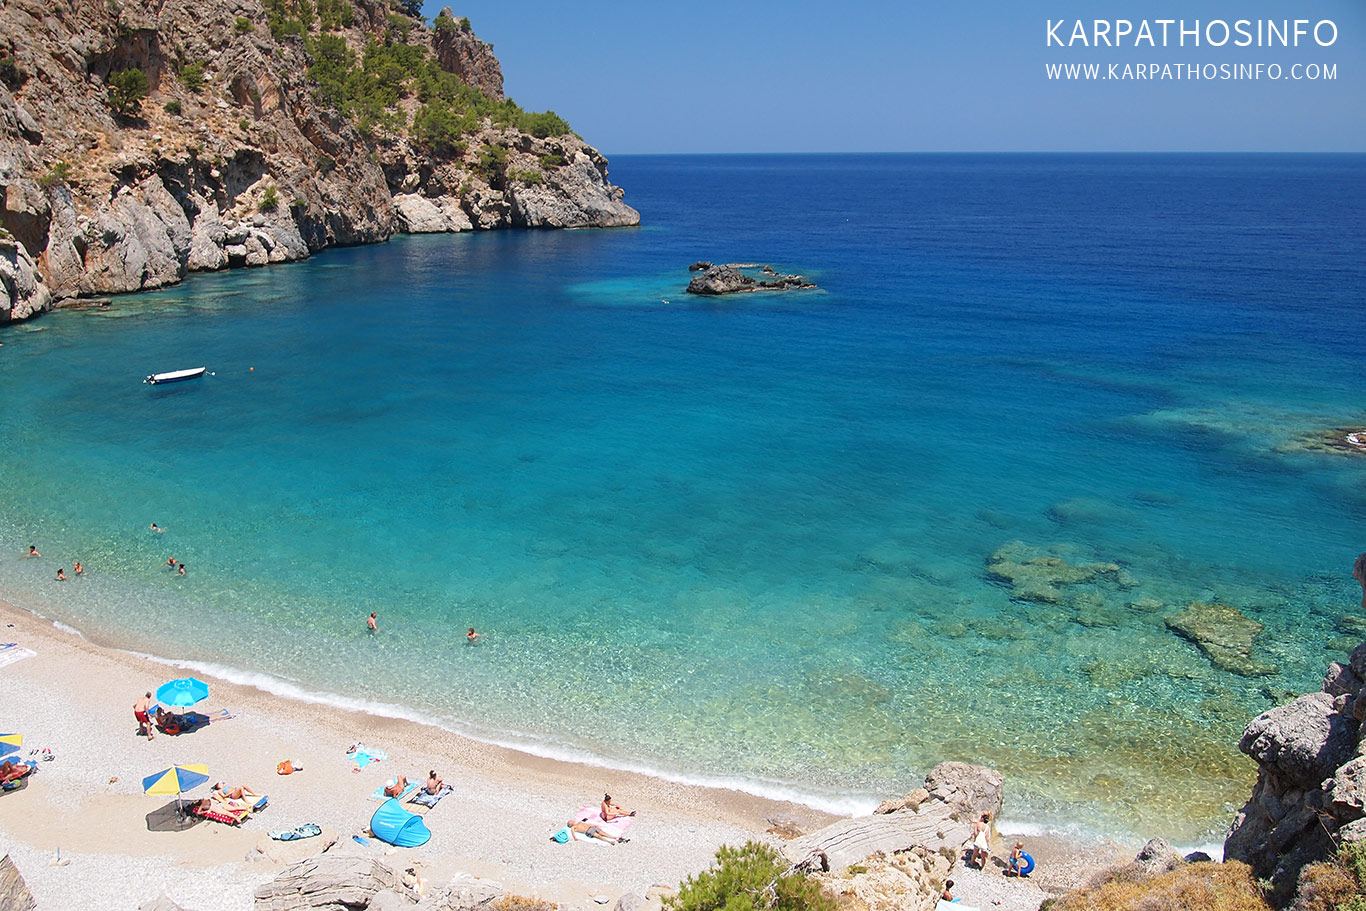 Best beaches in Karpathos - Achata